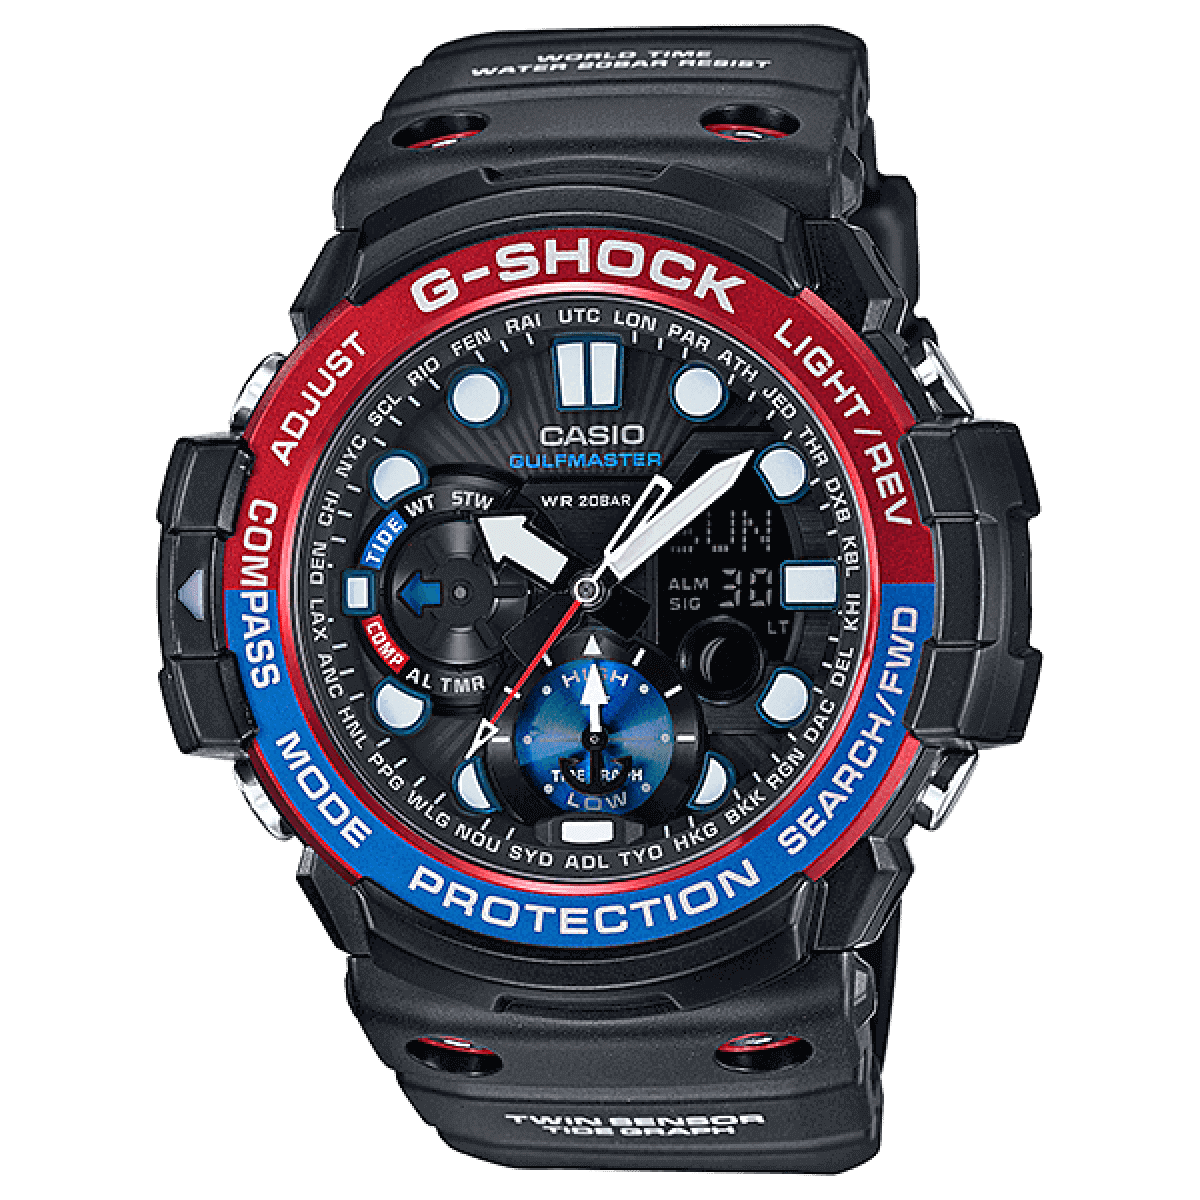 2d05827dc48 Limited Edition 92 watches. G-Shock Newsletter